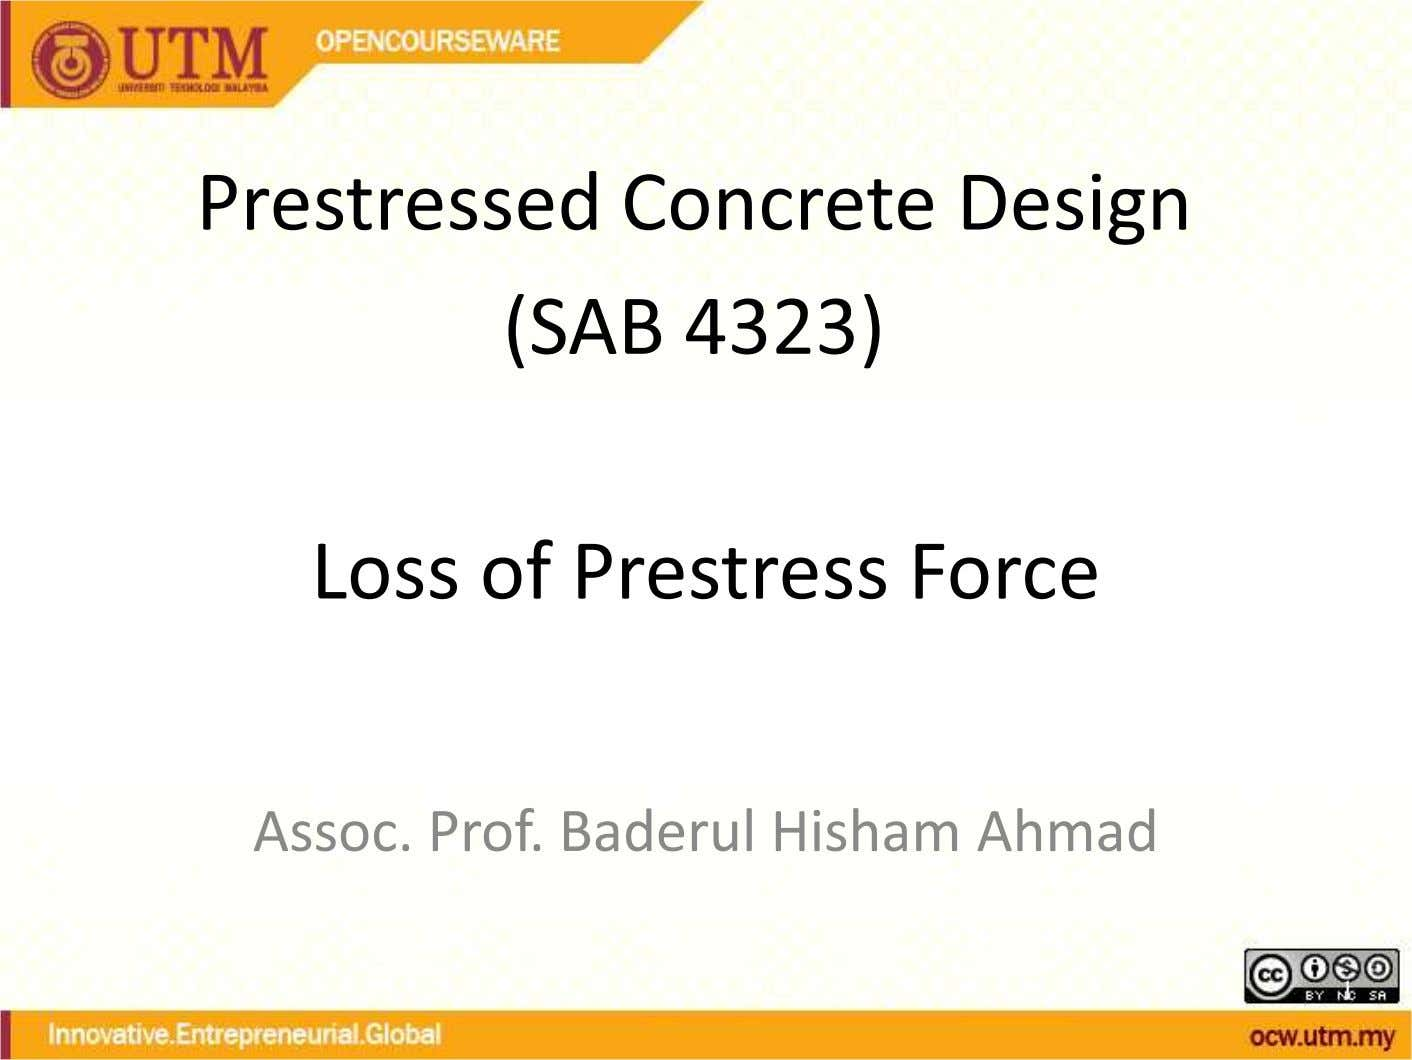 Prestressed Concrete Design (SAB 4323) Loss of Prestress Force Assoc. Prof. Baderul Hisham Ahmad 1